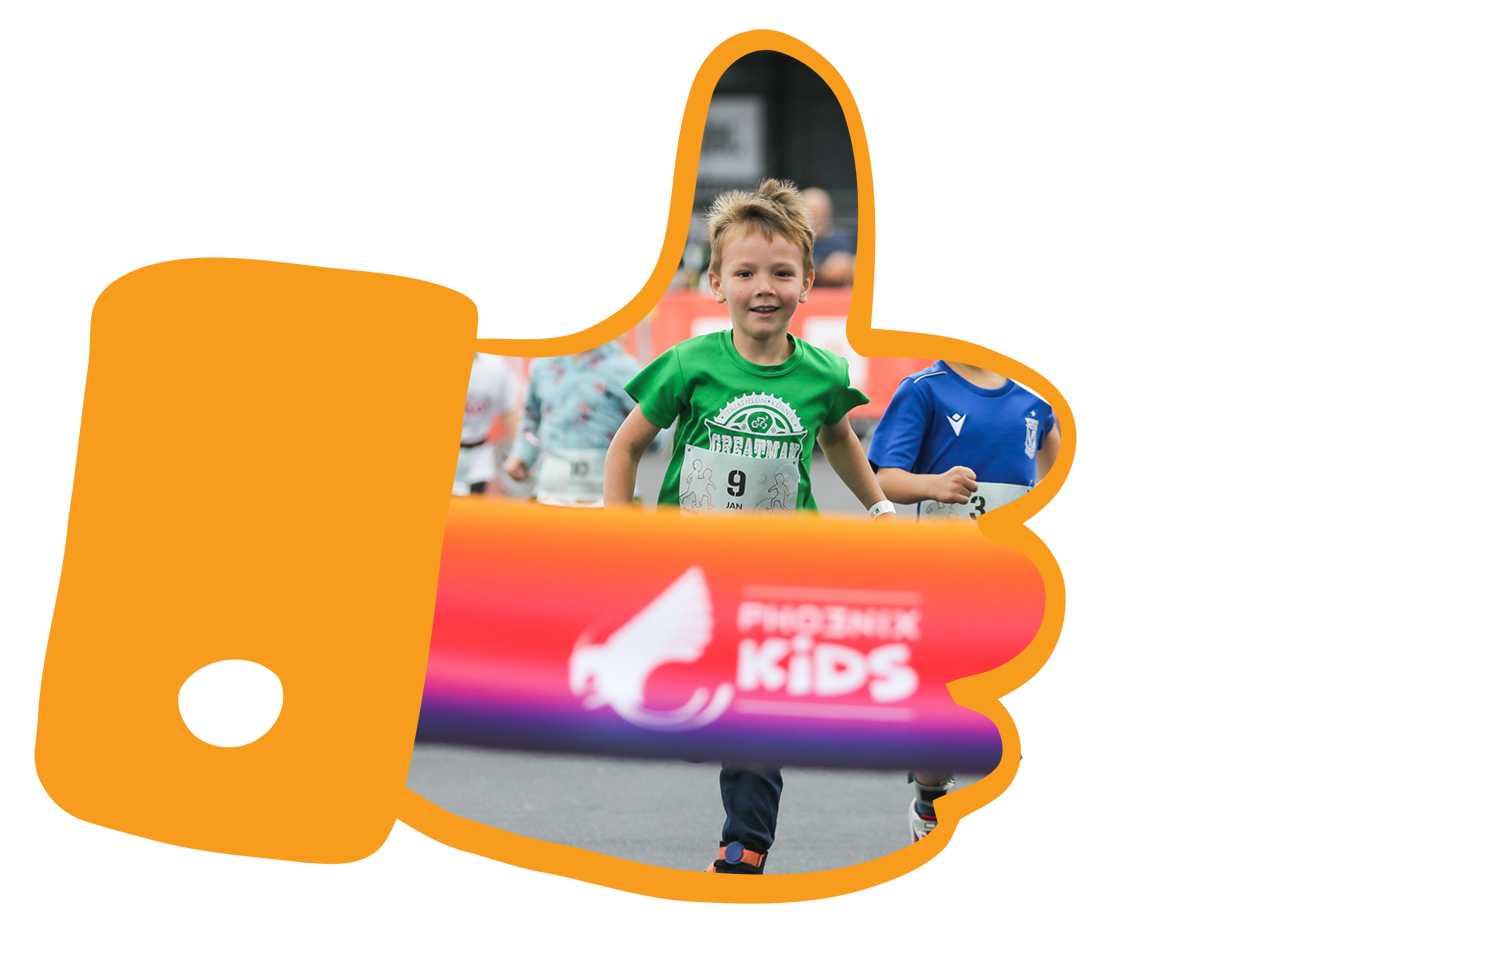 Sports competitions for children